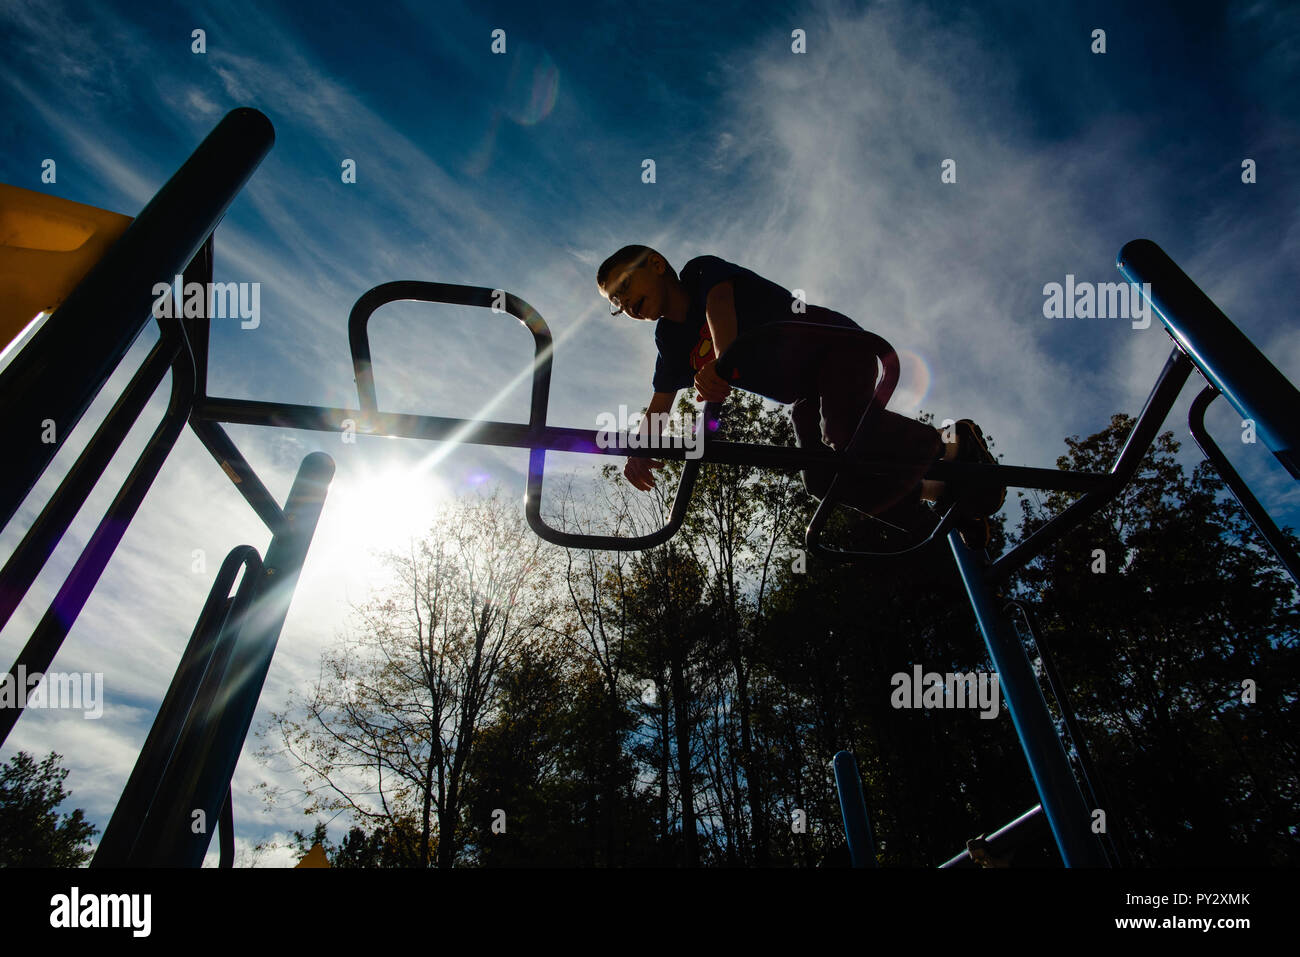 A 12-year old boy climbs across the monkey bars at a playground on a sunny day. Stock Photo